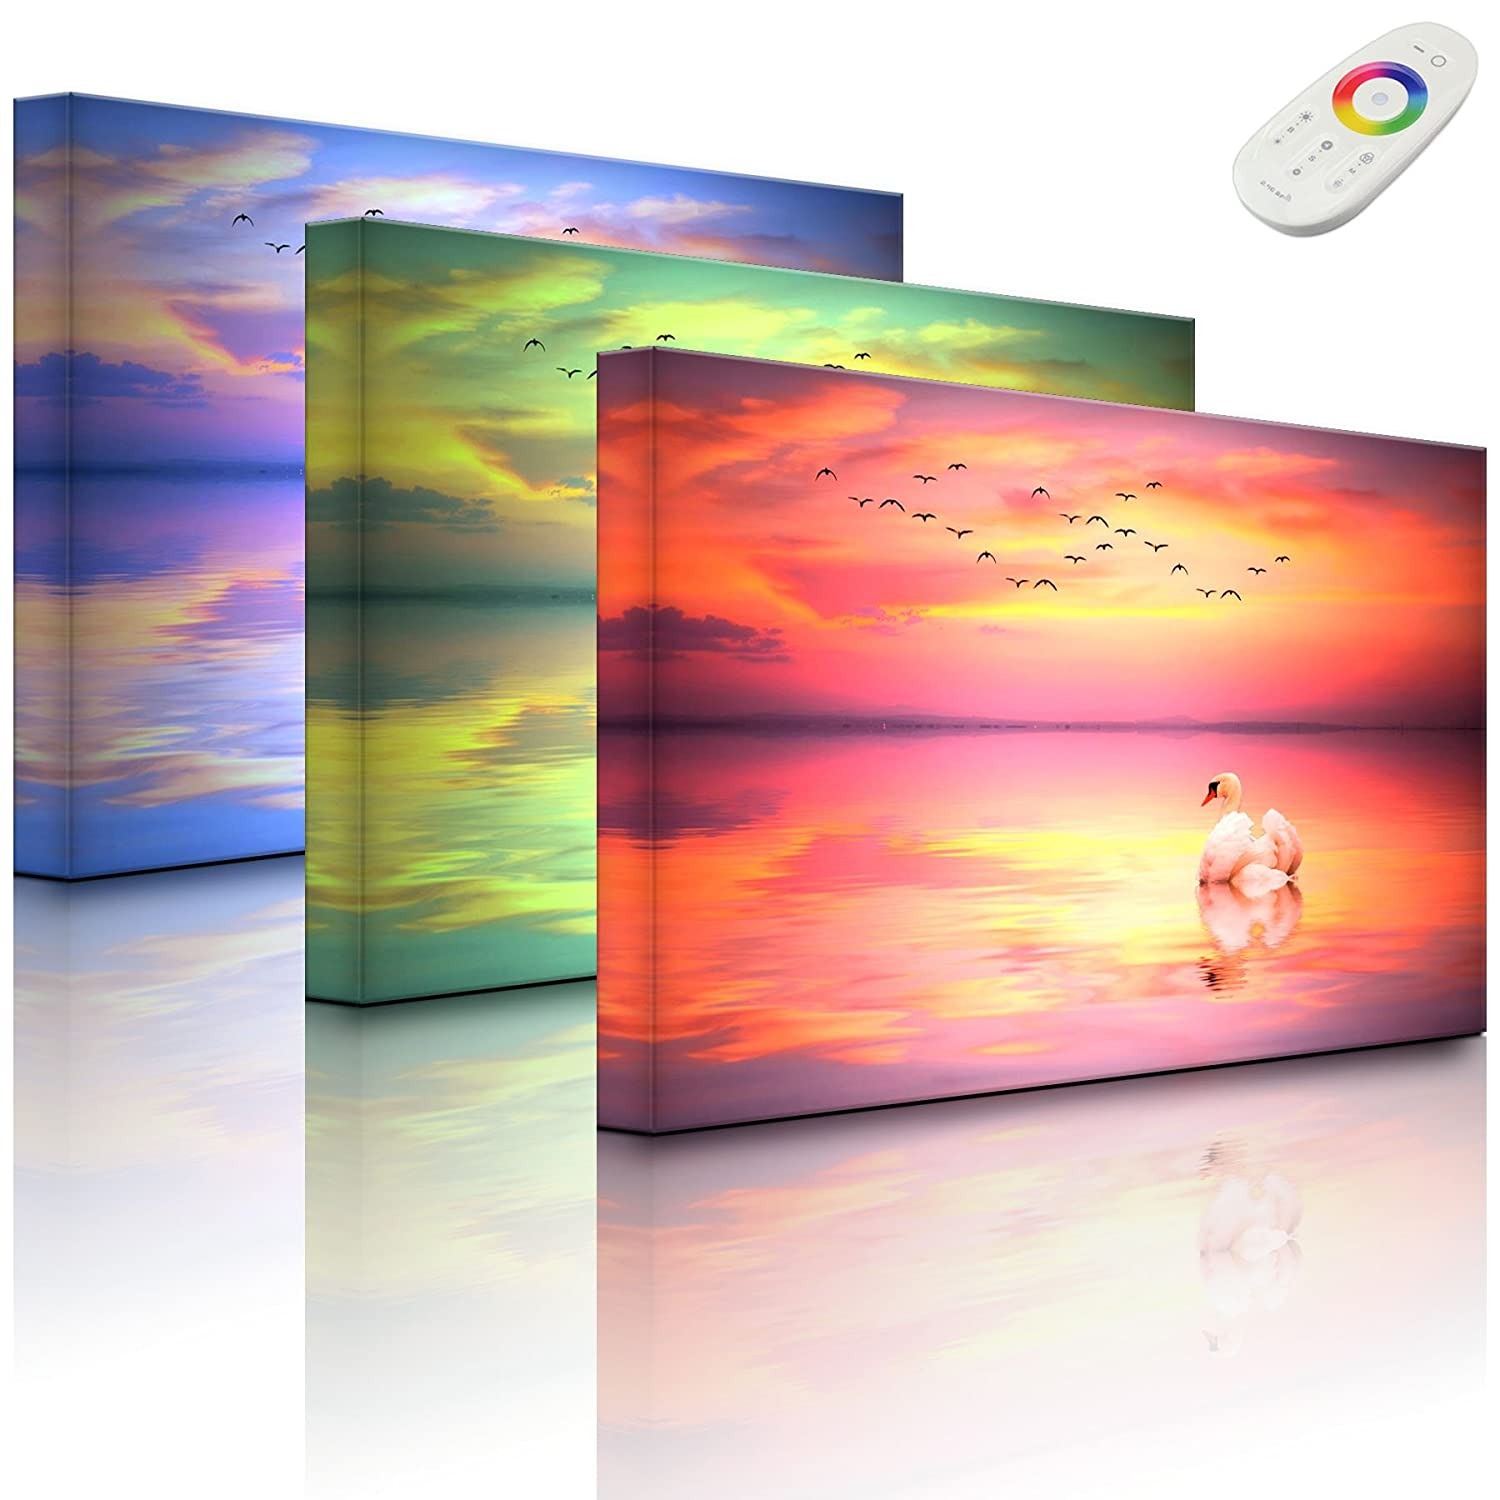 lightbox-multicolor.com LED picture with lighting - swan at sunset - 60 x 40 cm - front lighted Rossteutscher GbR